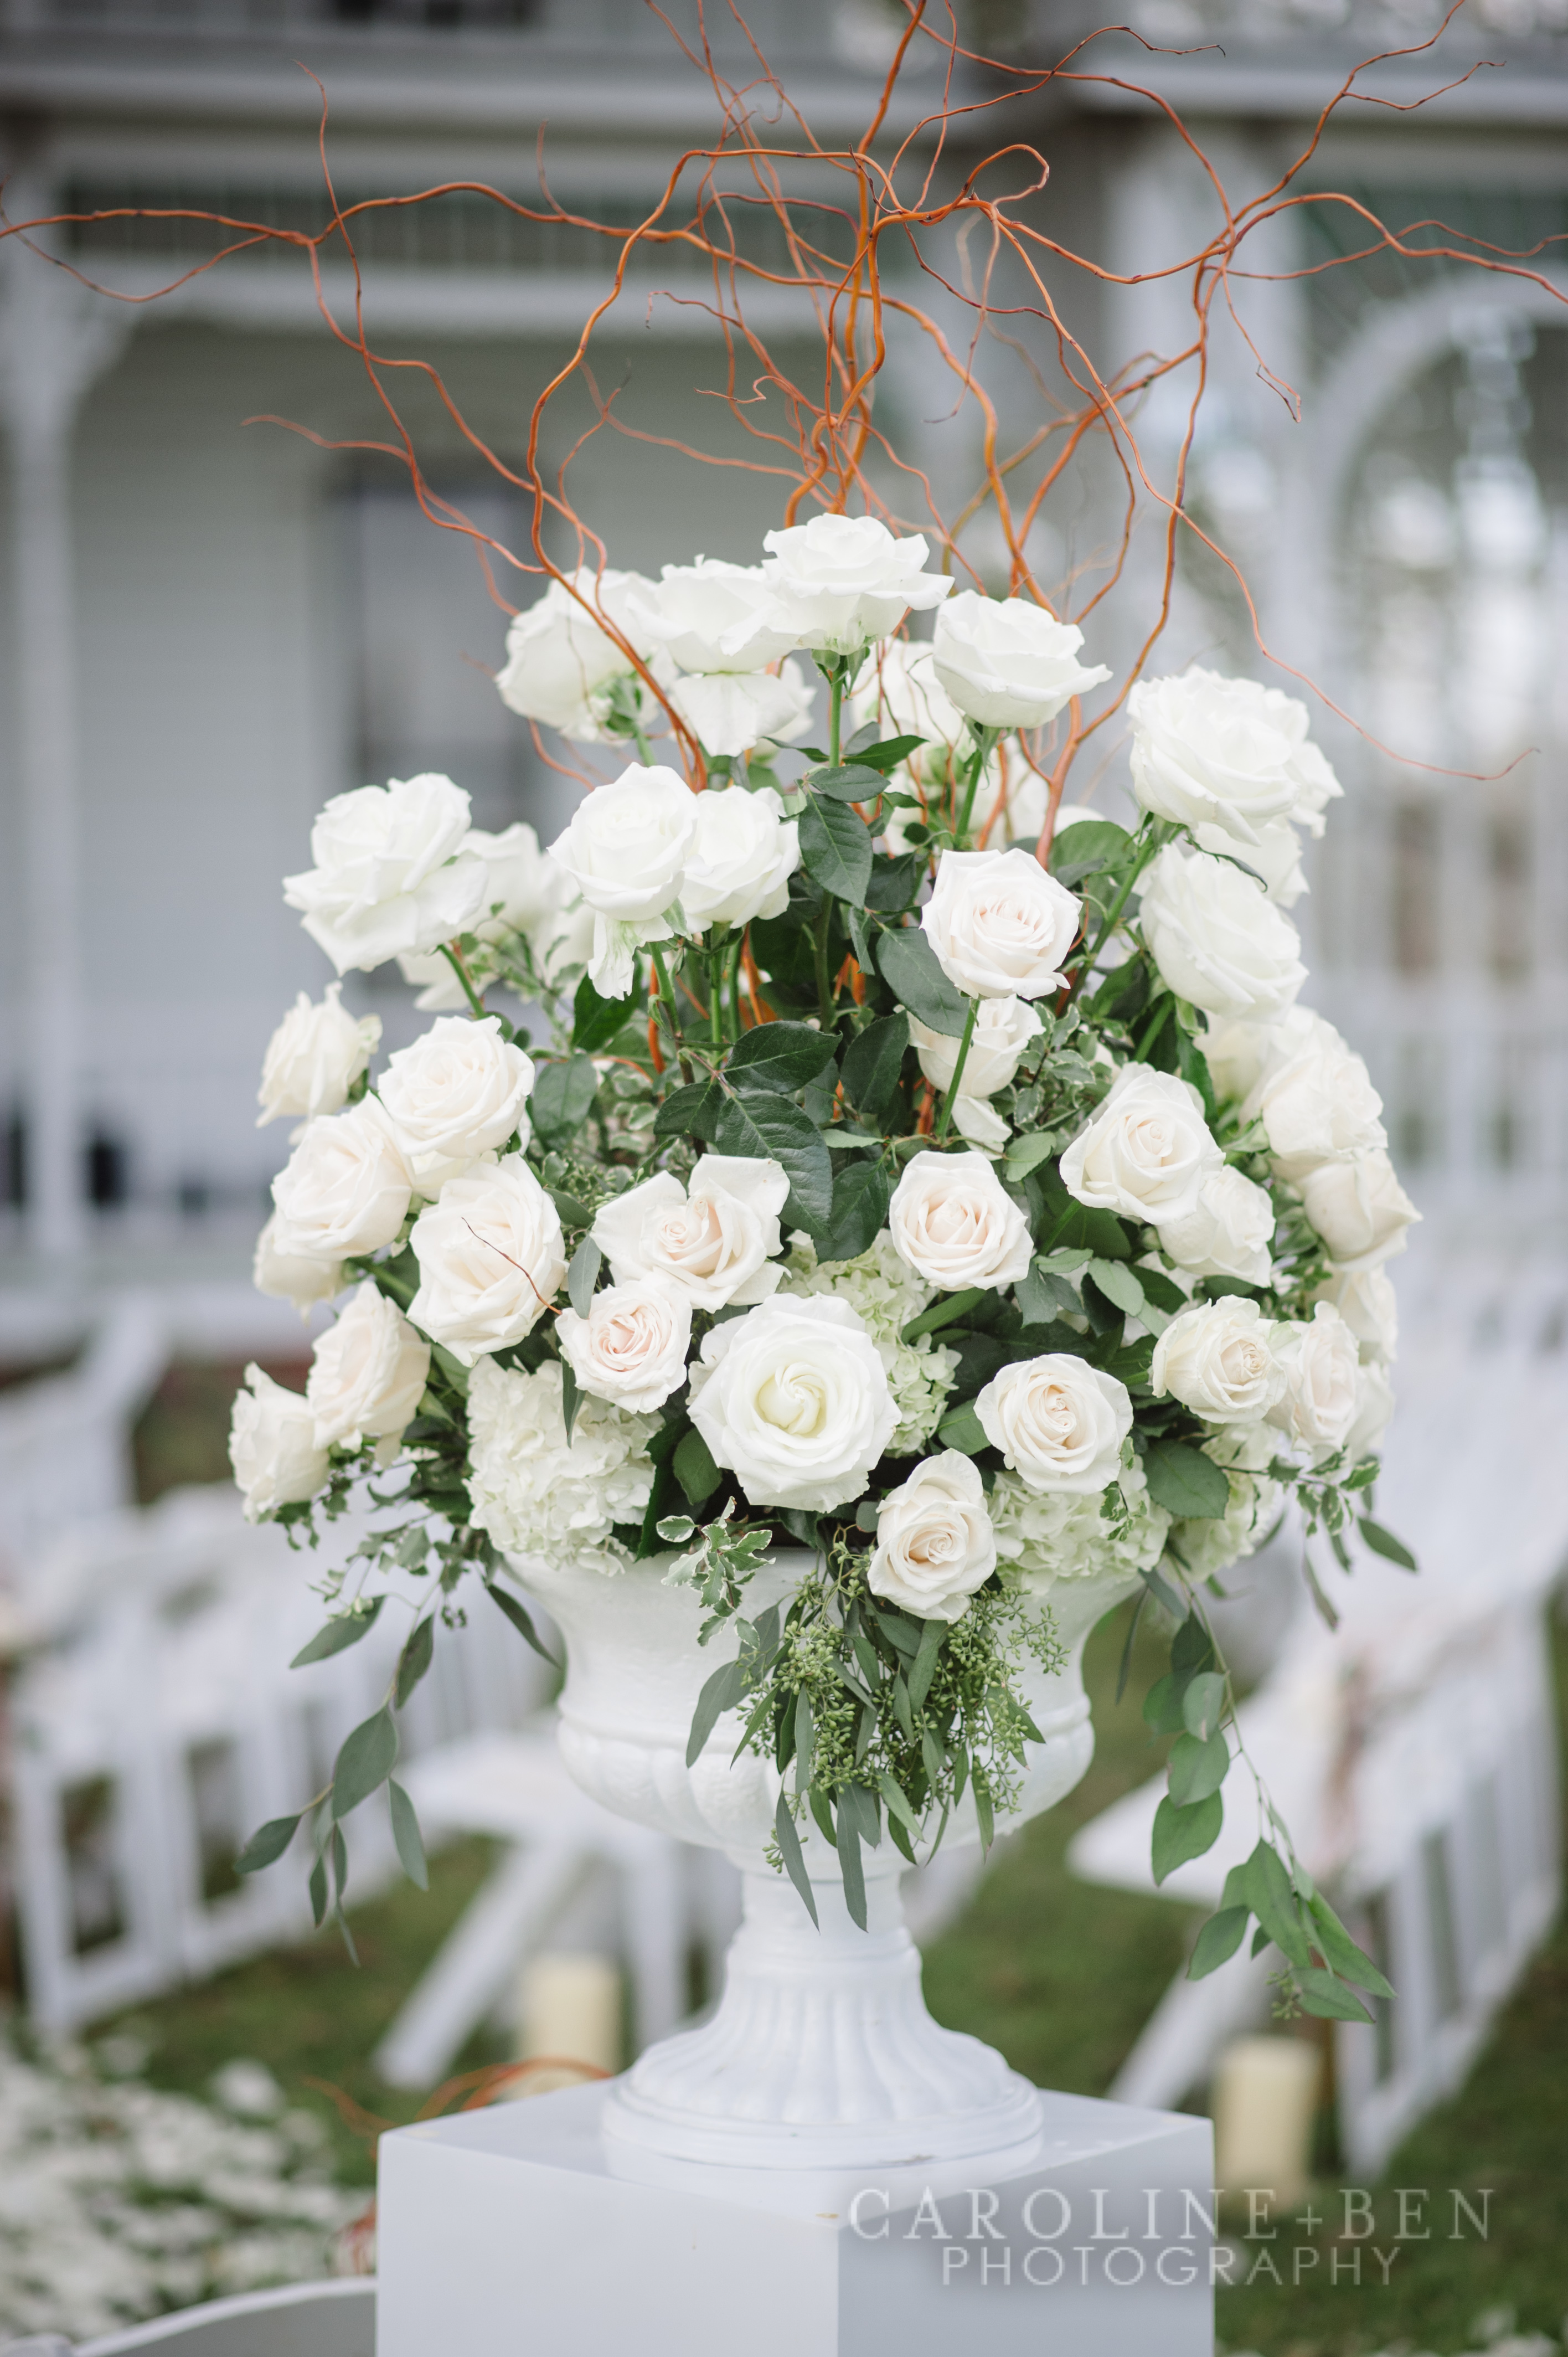 Lush roses for the aisle entrance.